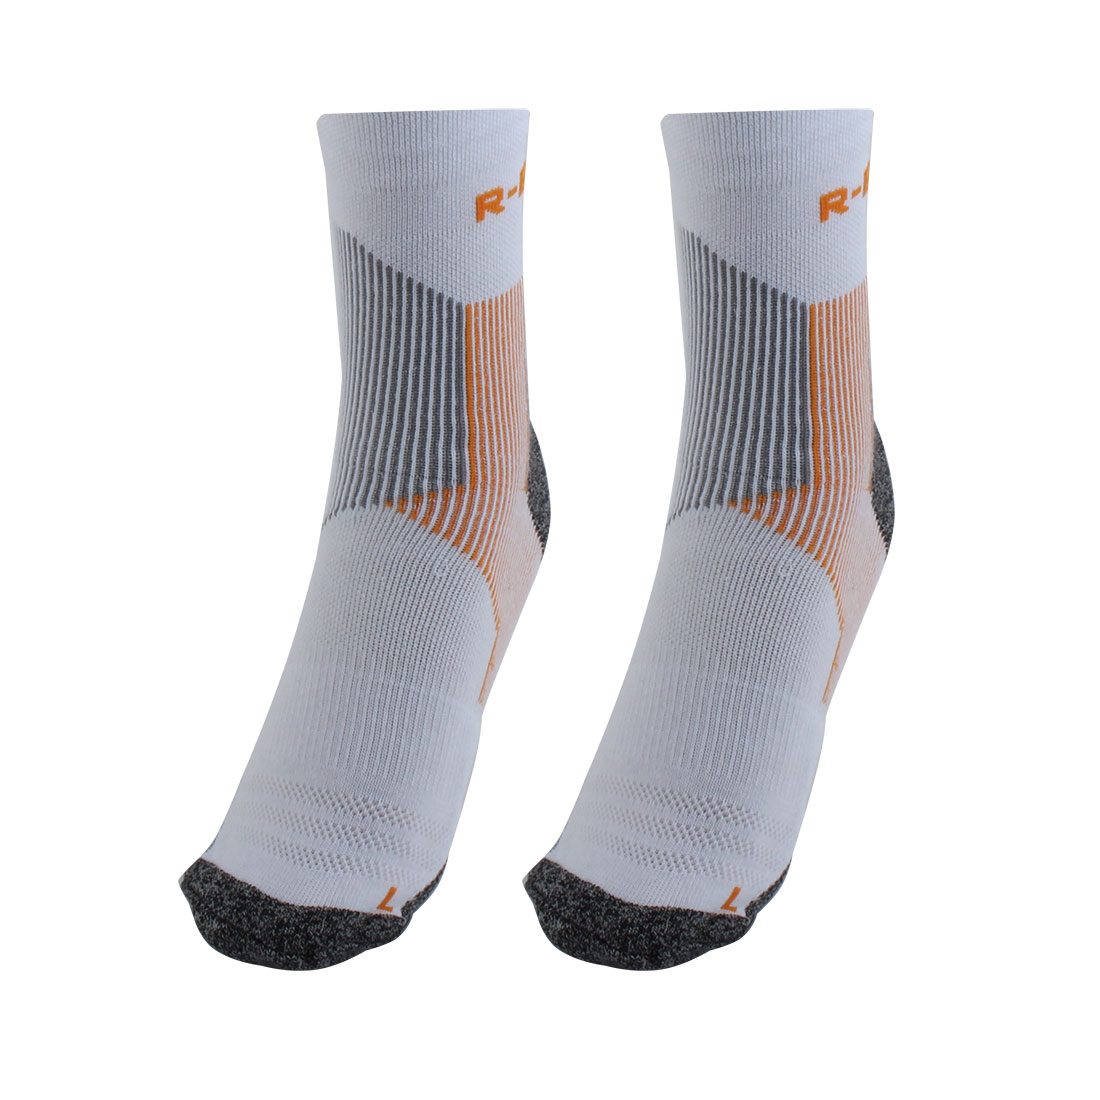 R-BAO Authorized Bicycle Jogging Mountain Bike Cotton Blend Compression Sports Cycling Socks Orange L